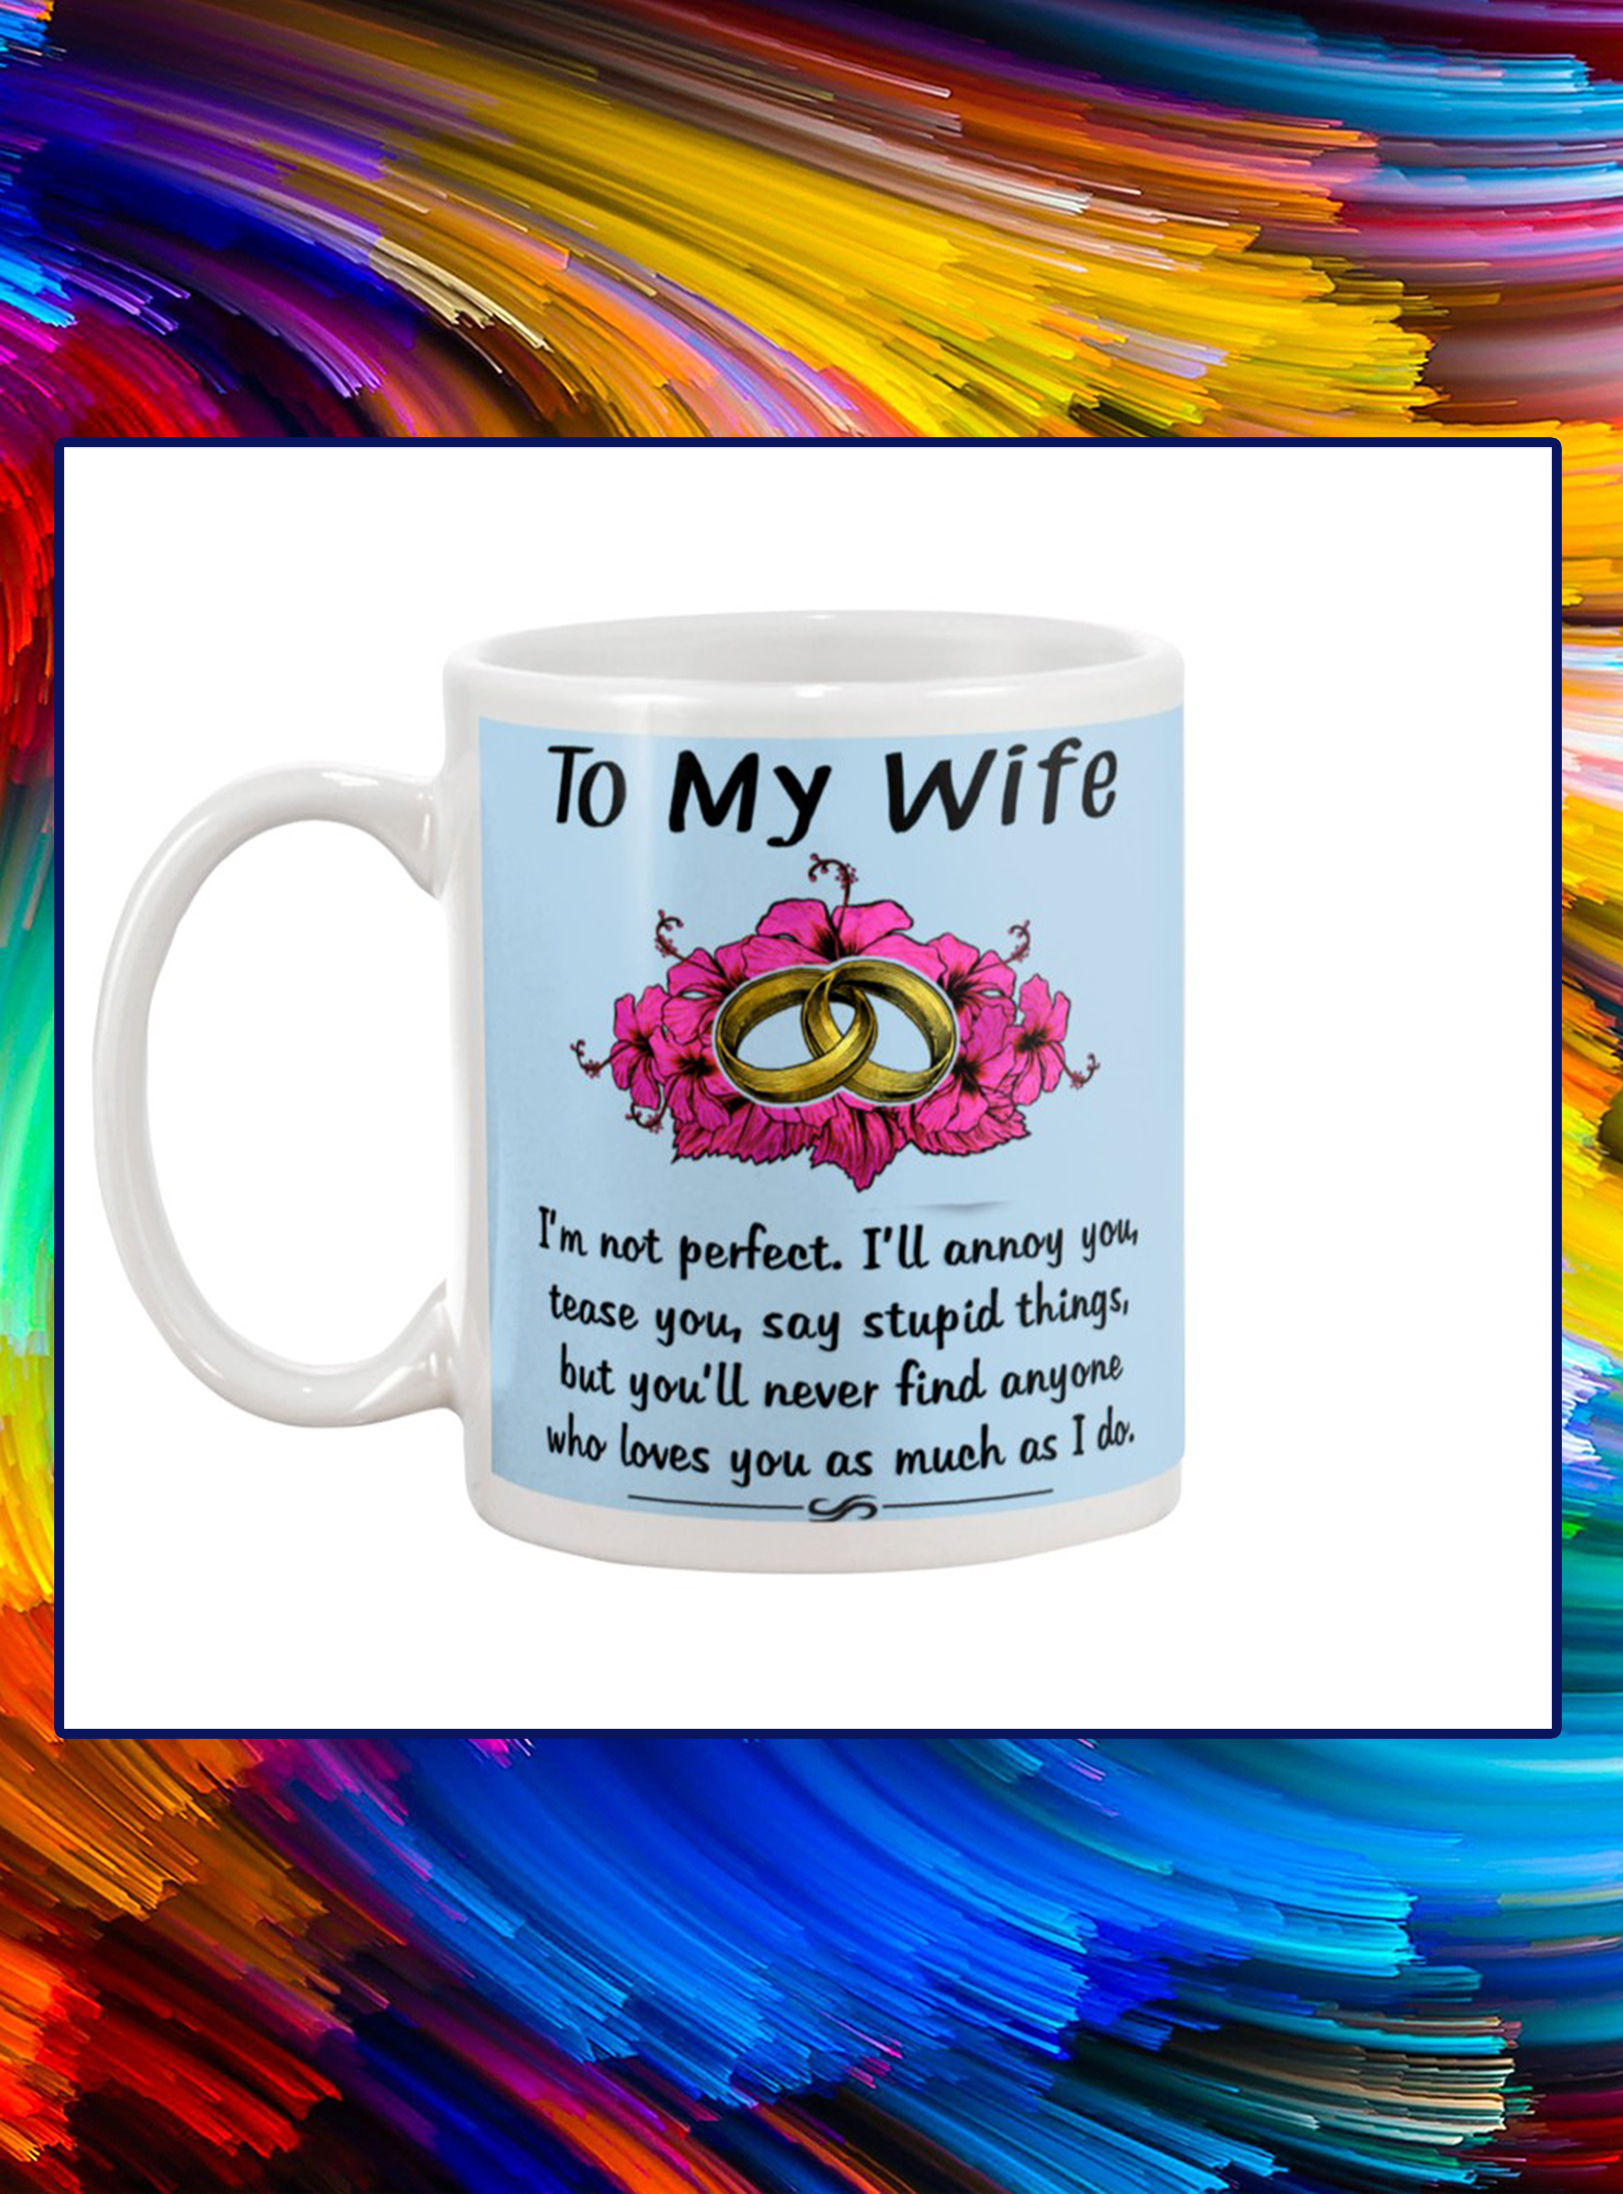 Ring to my wife i'm not perfect mug- light blue